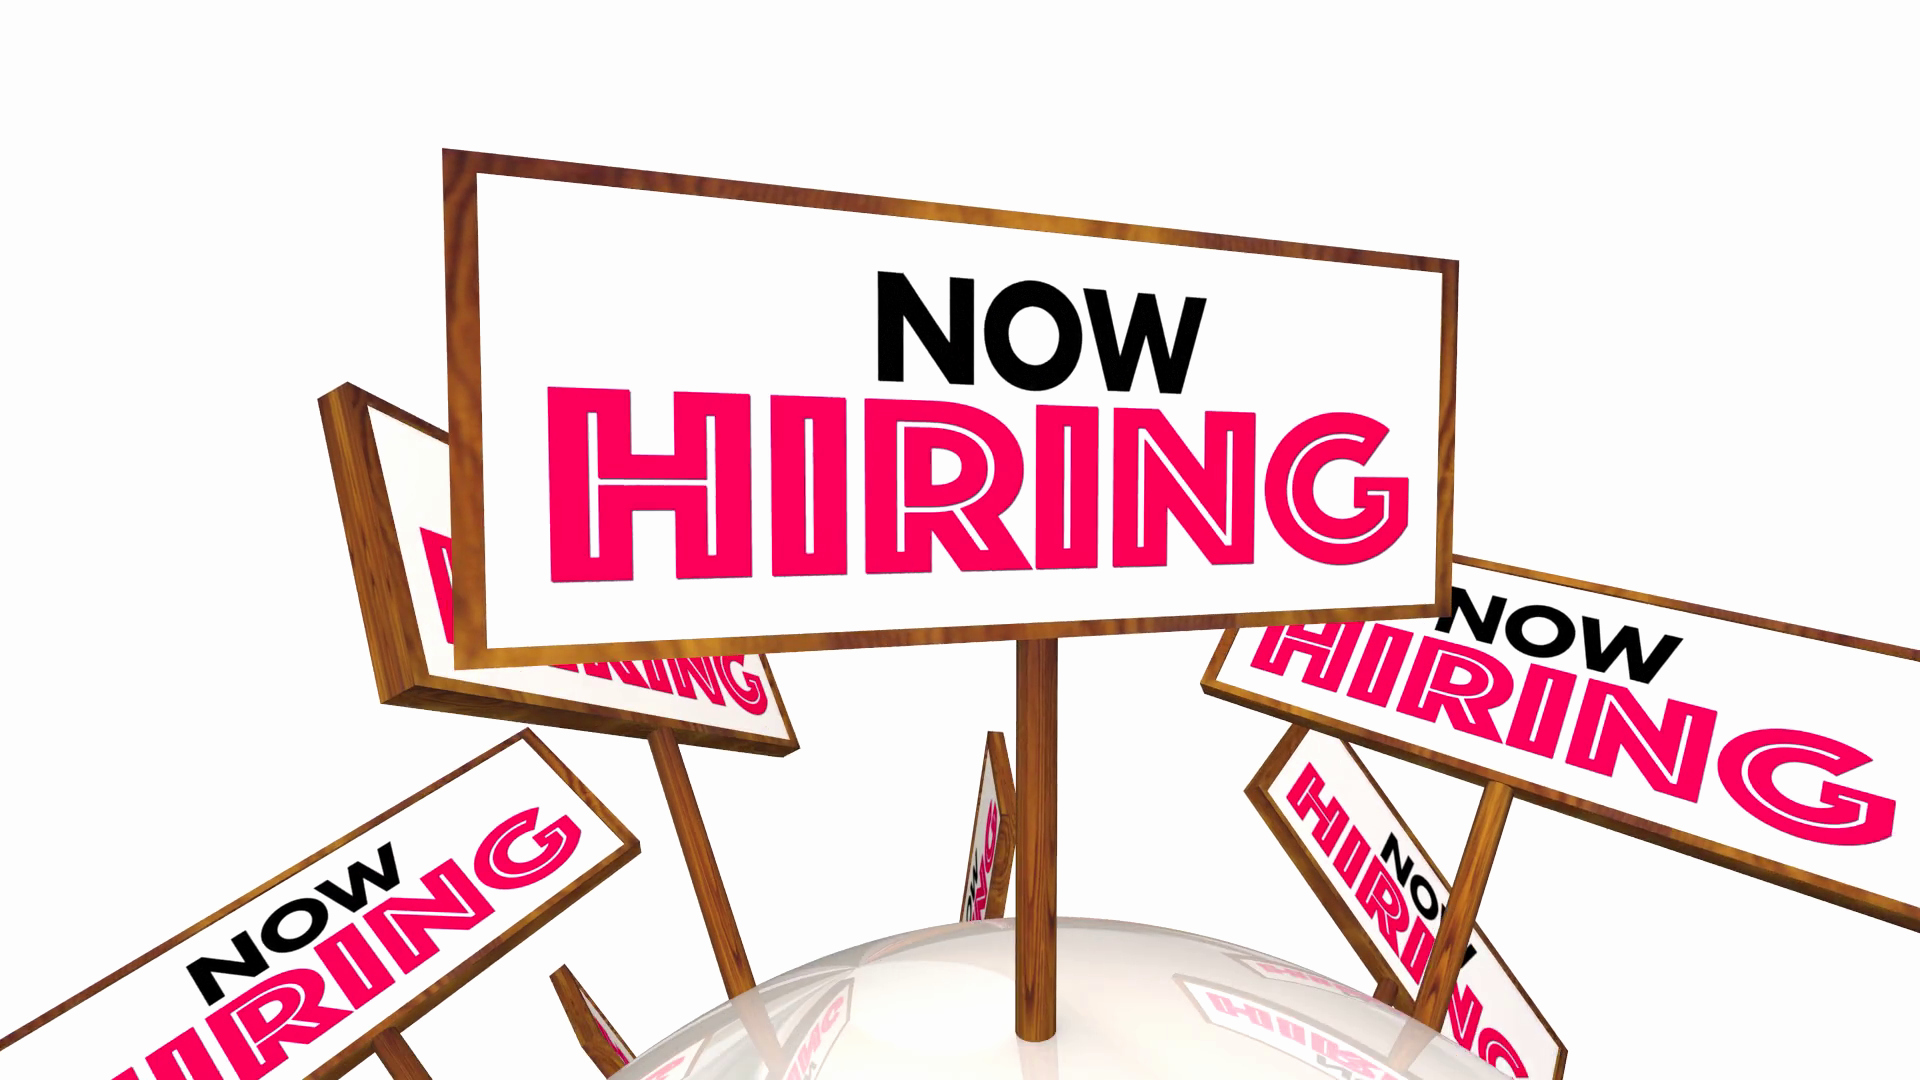 Now Hiring Sign Template Free Fresh now Hiring Help Wanted Open Jobs Positions Signs 3 D